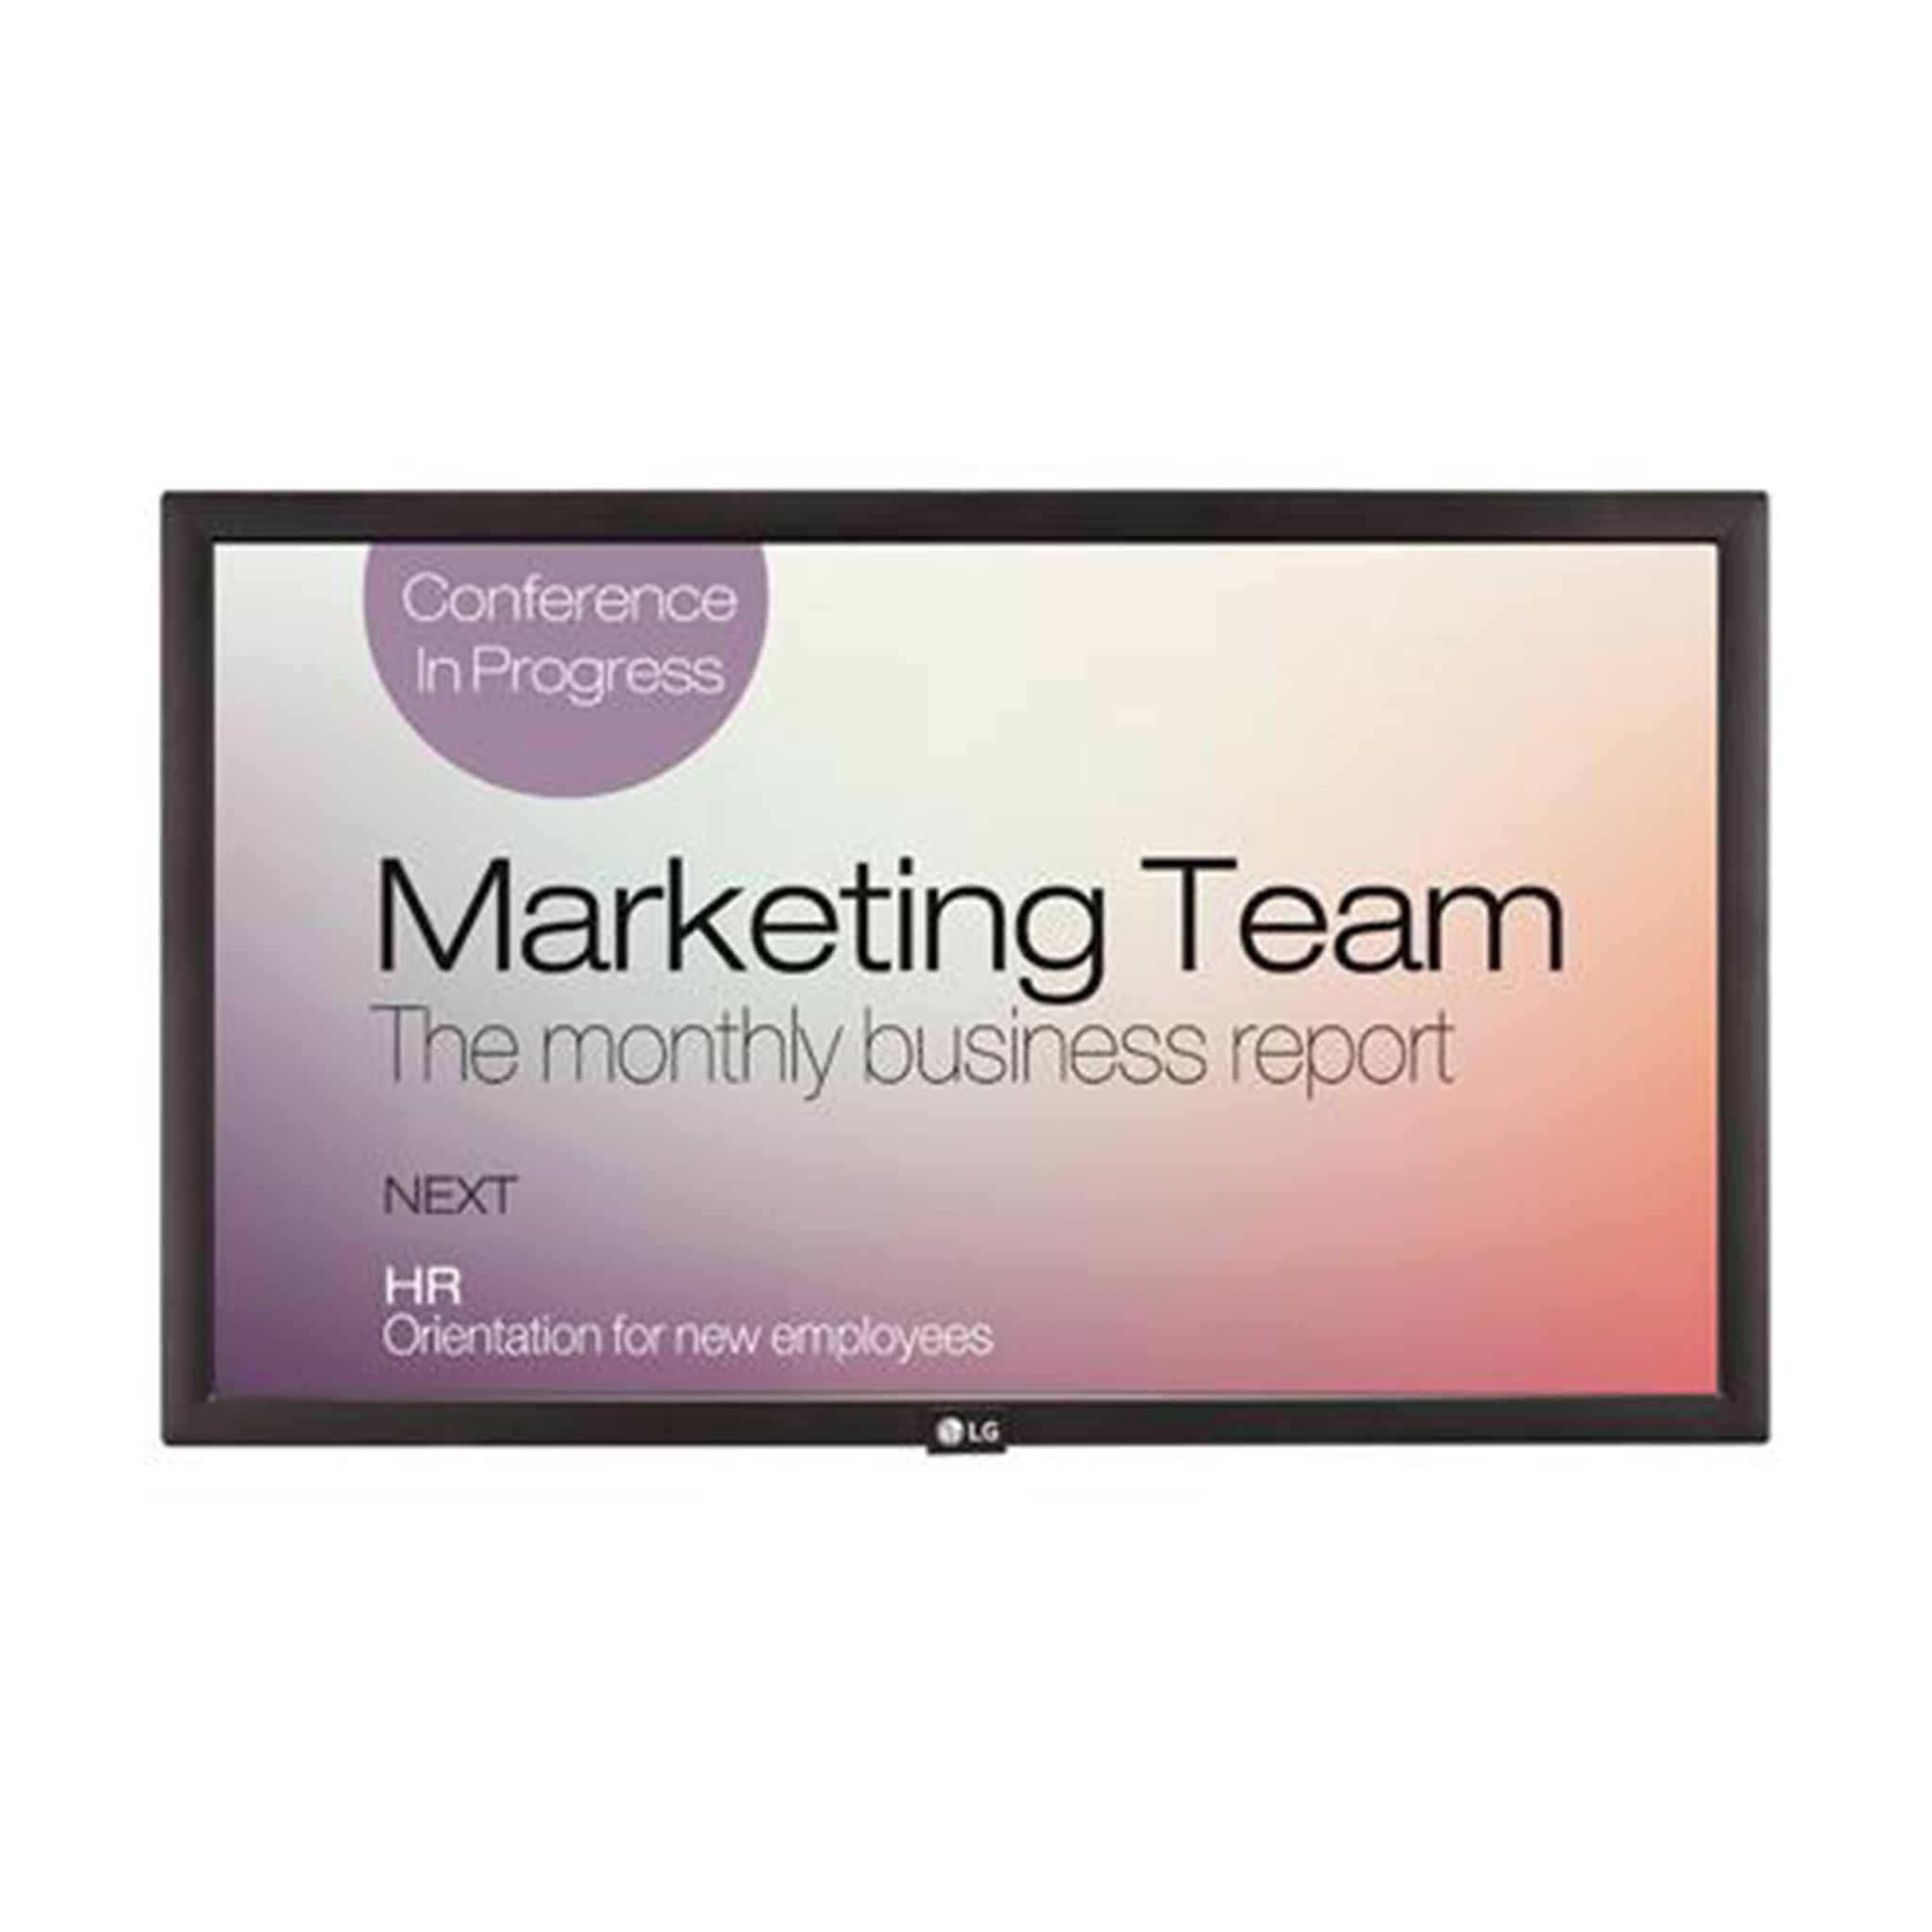 LG Commercial Signage Display SM3 series - 22""